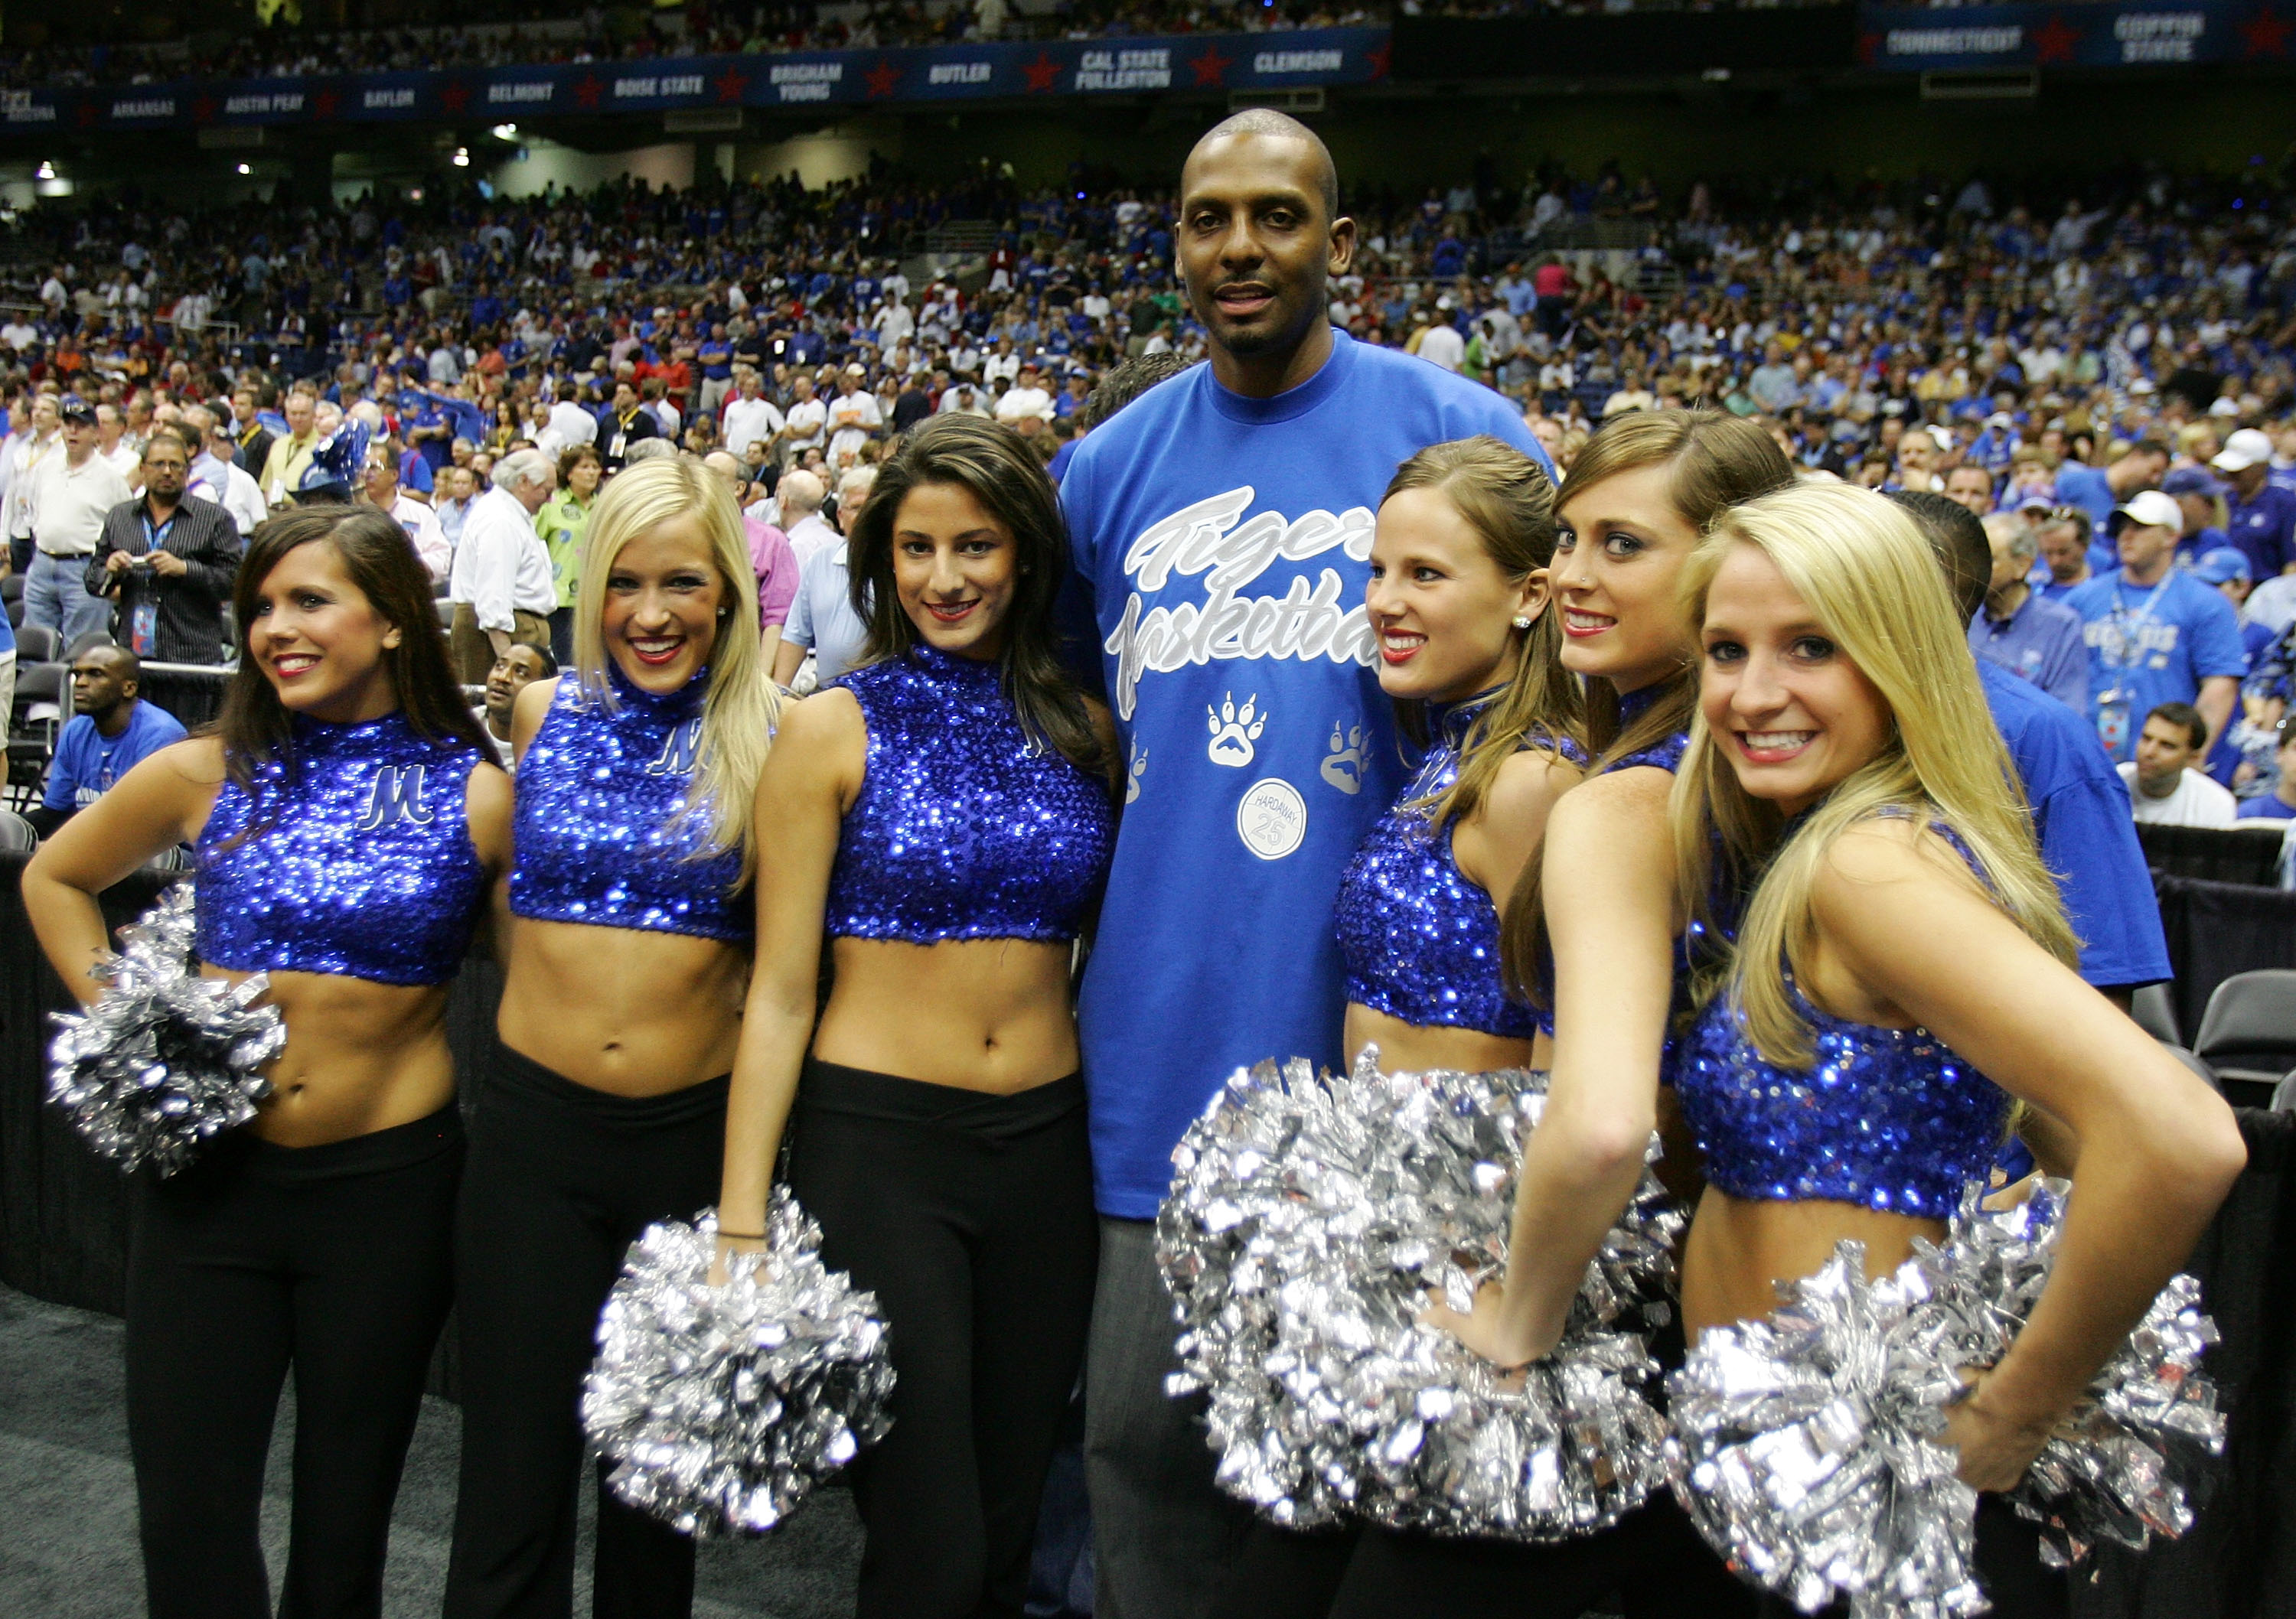 SAN ANTONIO - APRIL 07:  Former Memphis Tigers player Anfernee ?Penny? Hardaway poses with the Tigers dance team prior to the start of the 2008 NCAA Men's National Championship game against the Kansas Jayhawks at the Alamodome on April 7, 2008 in San Anto